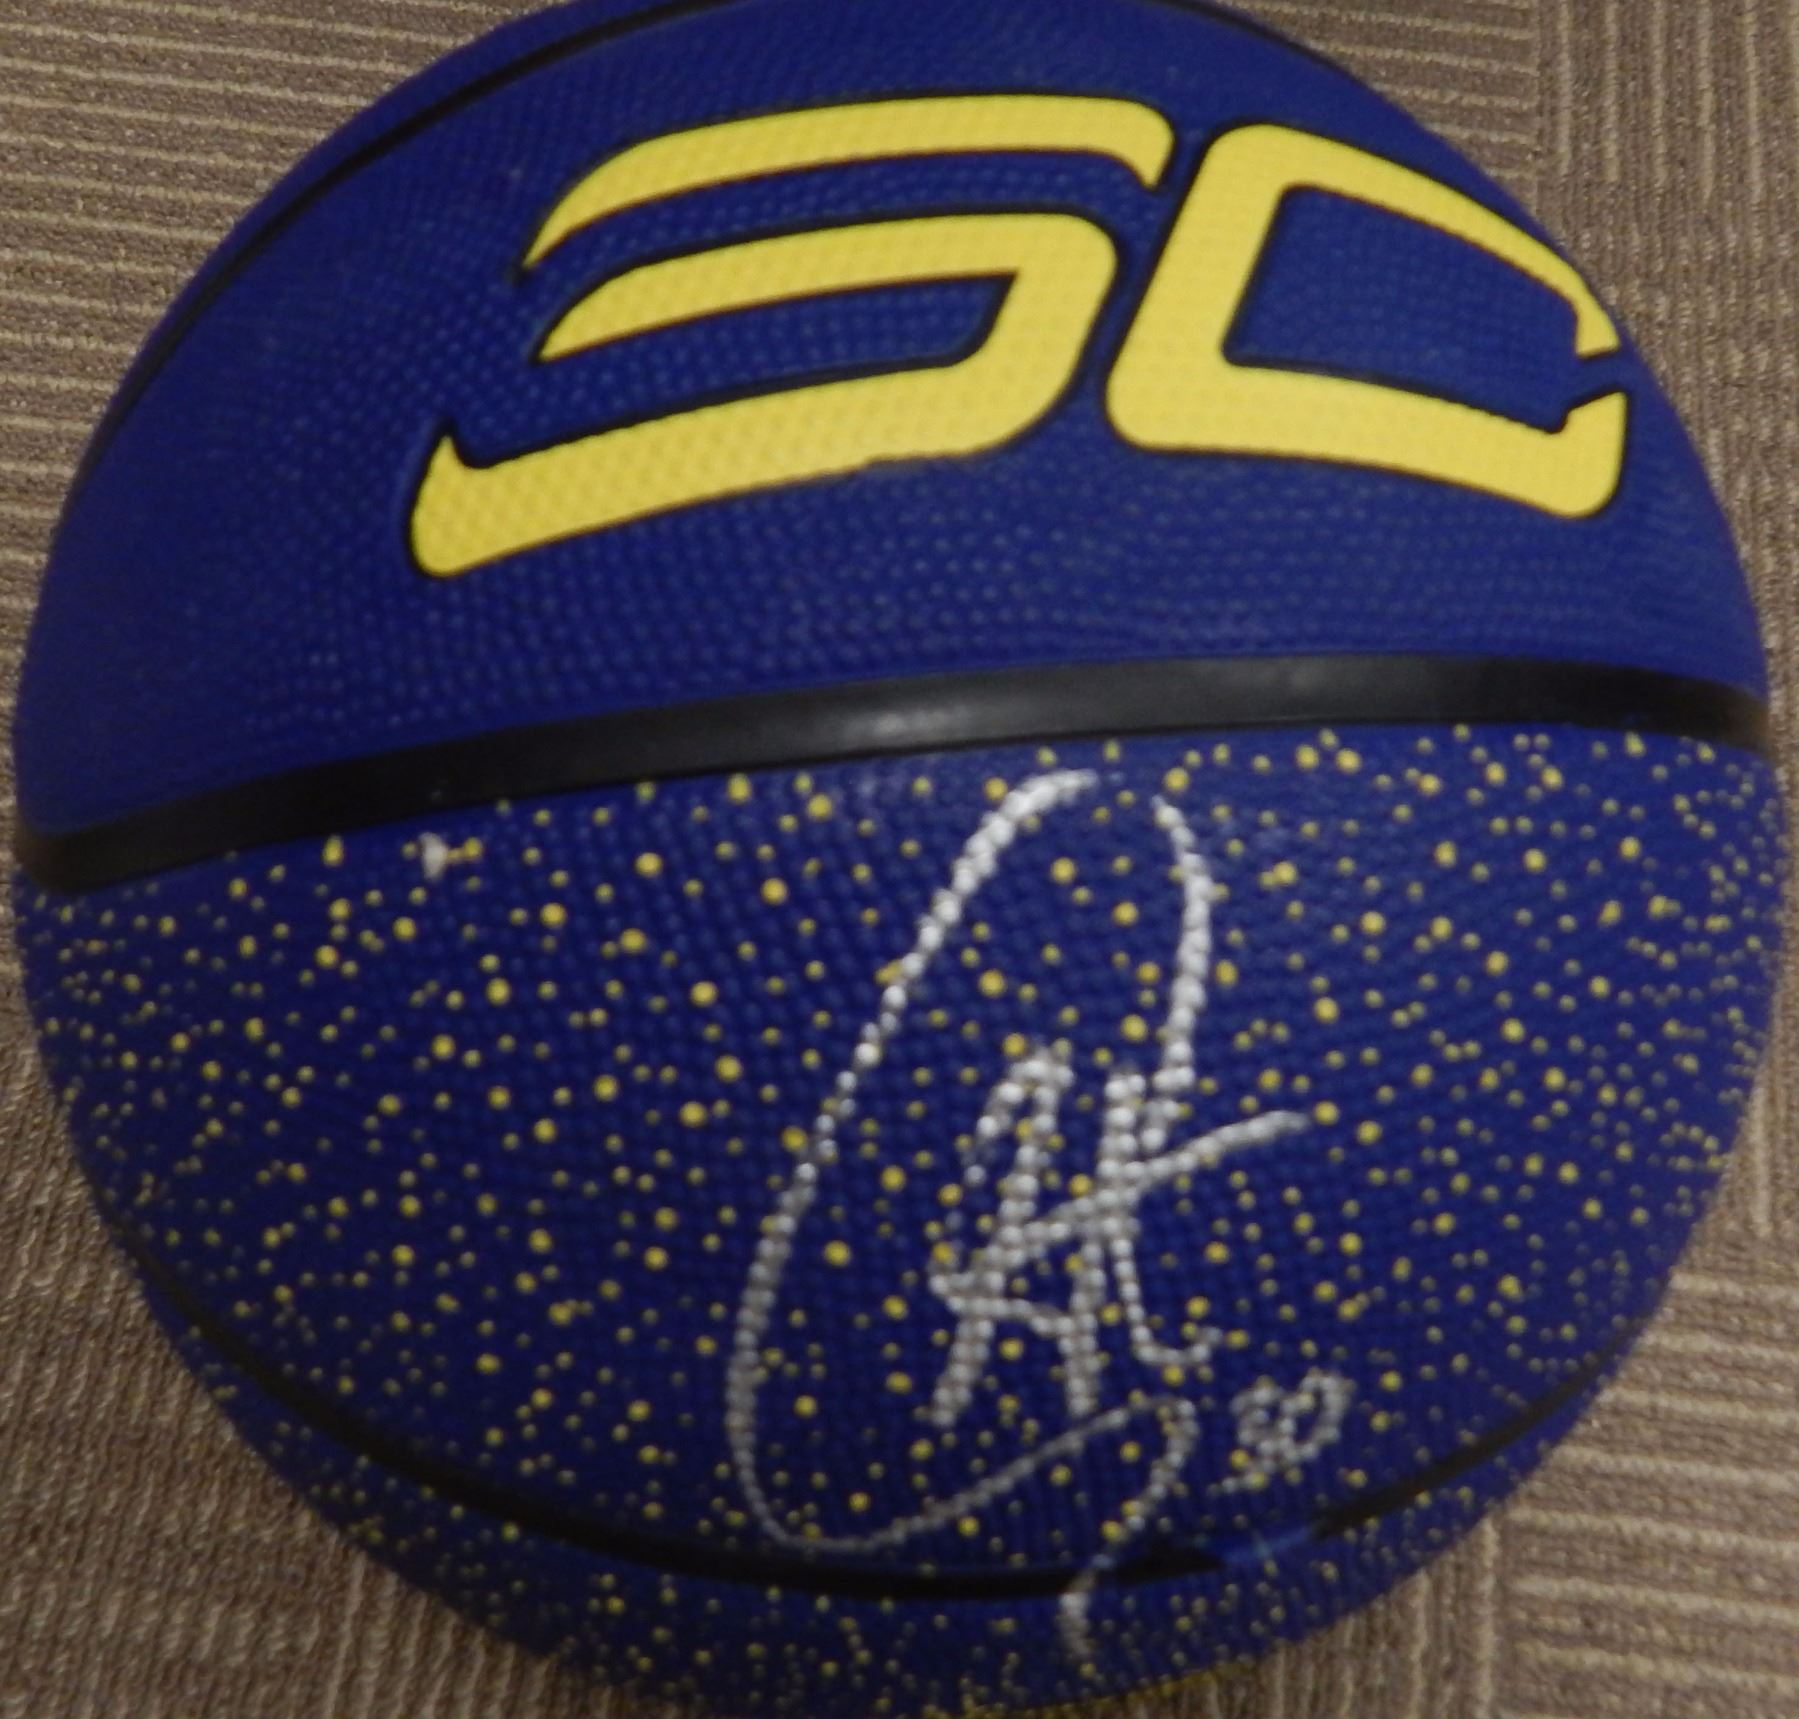 finest selection 279eb 98226 Stephen Curry Signed Basketball